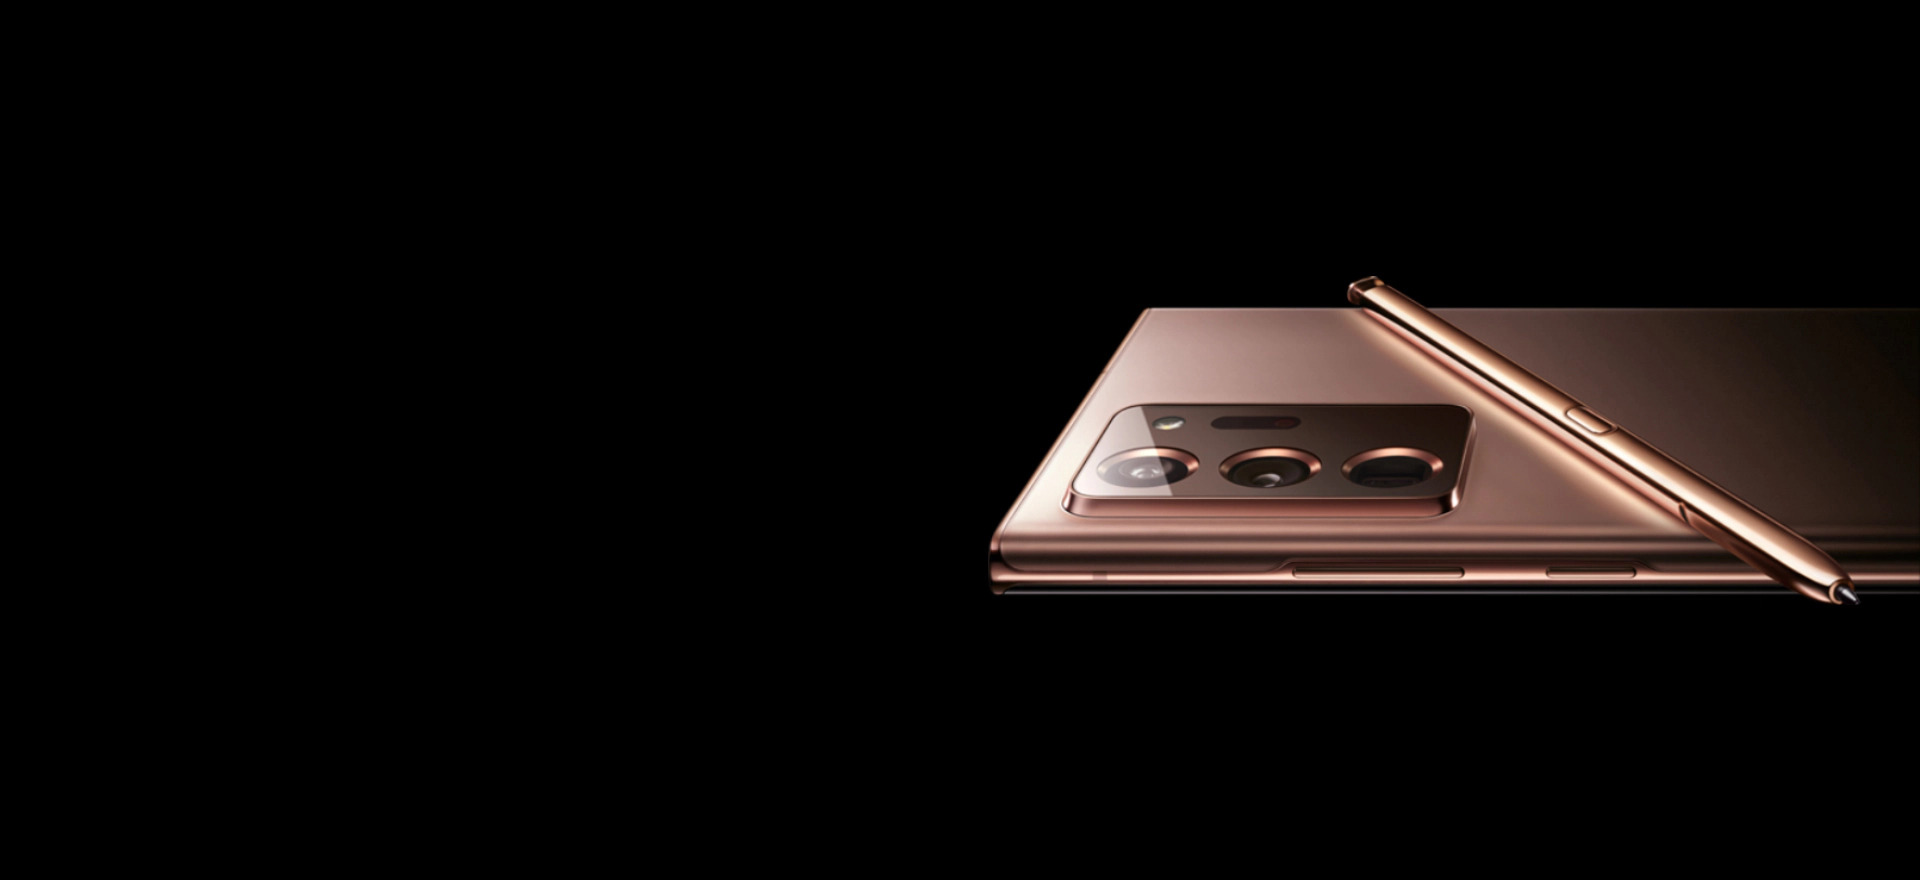 Note 20 Ultra Official Image